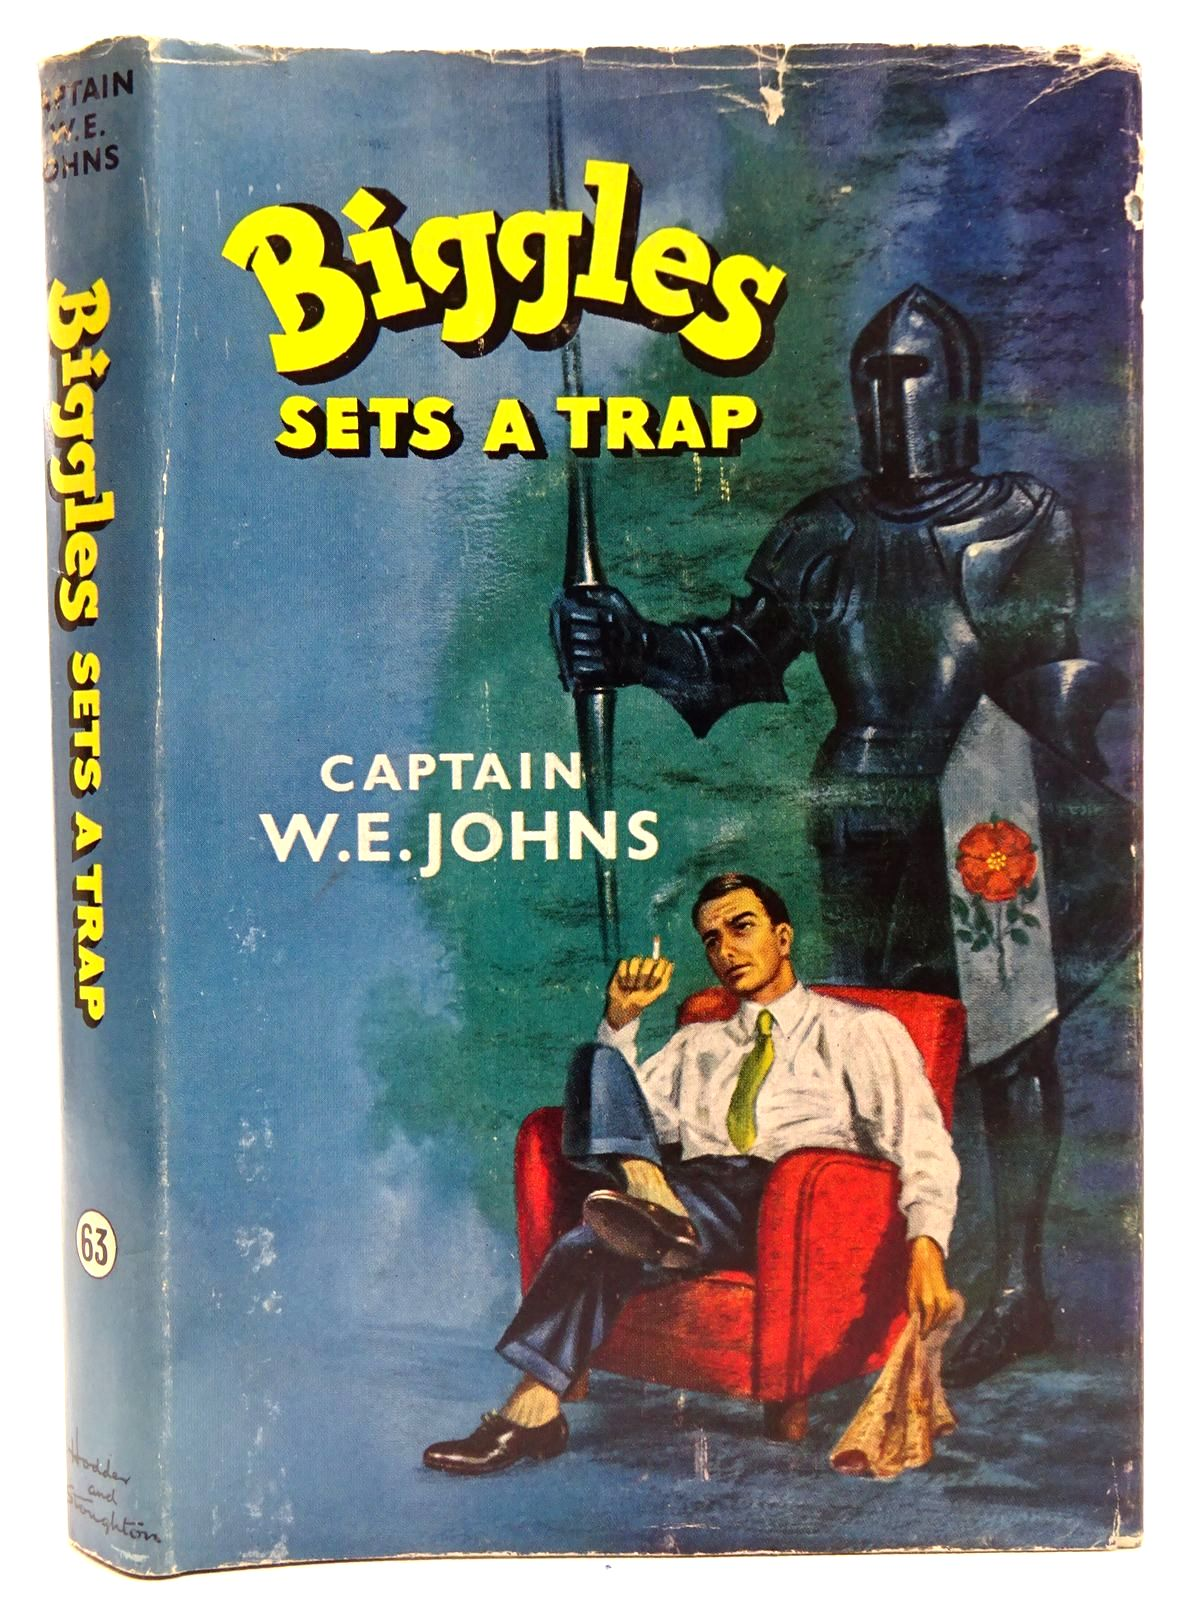 Photo of BIGGLES SETS A TRAP written by Johns, W.E. illustrated by Stead, published by Hodder & Stoughton (STOCK CODE: 2126433)  for sale by Stella & Rose's Books